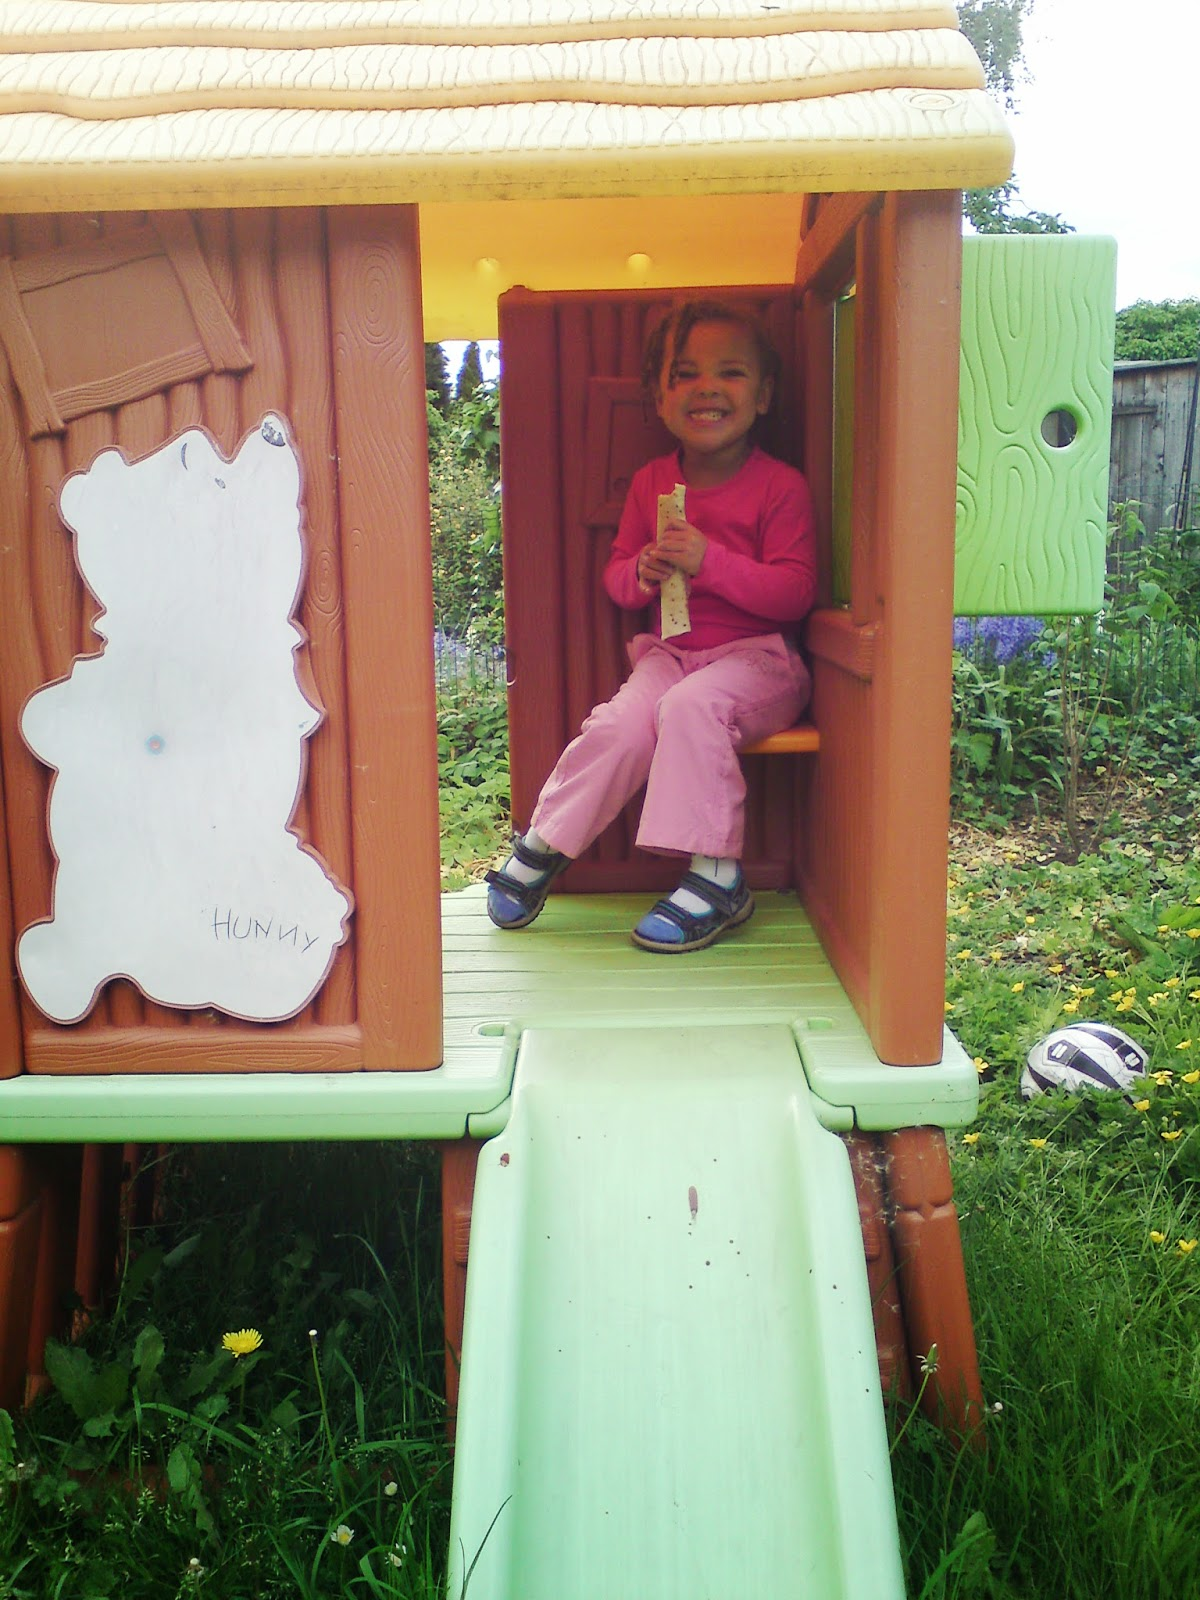 madam eating a wrap whilst sitting in a plastic playhouse in the garden